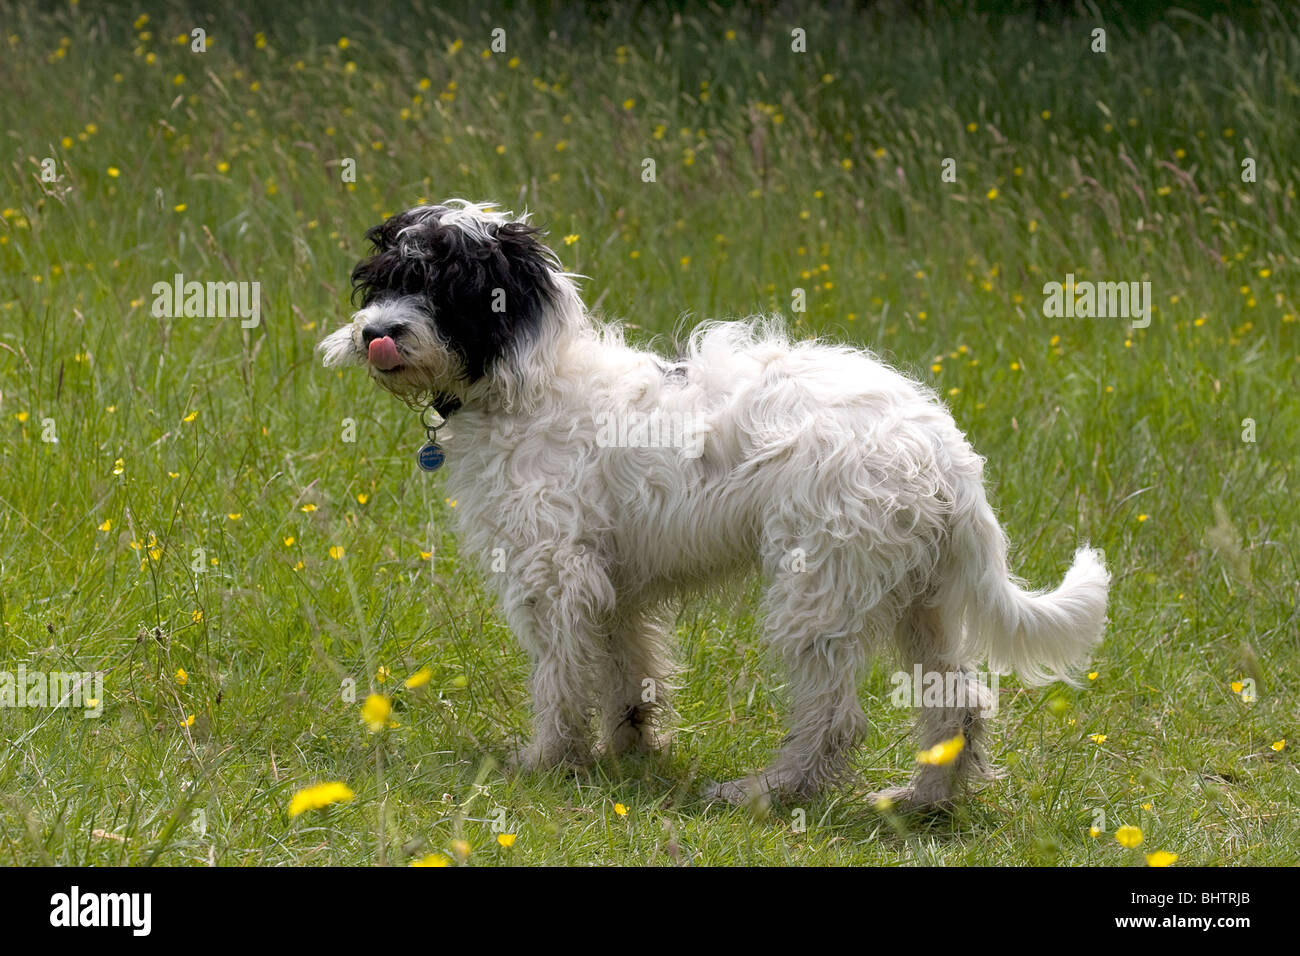 cockerpoo dog standing in spring meadow - Stock Image